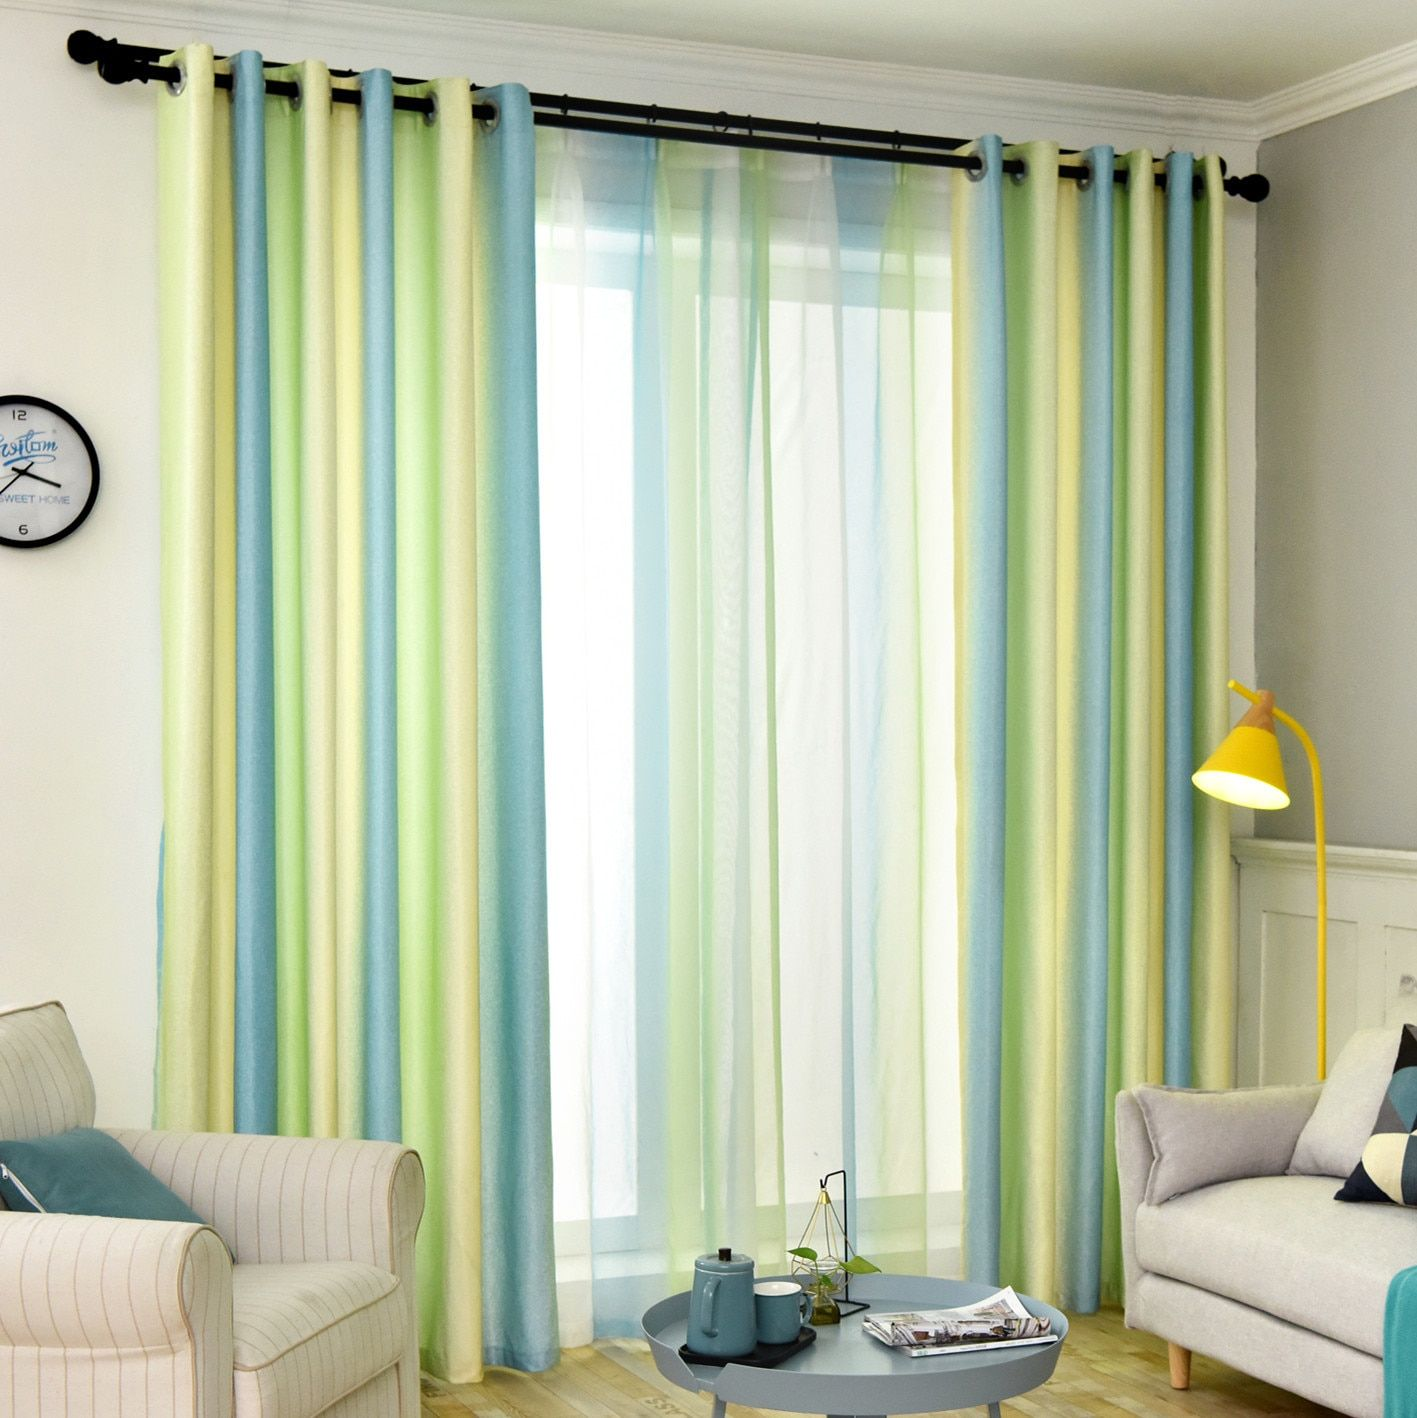 20 16 182 40 In 2021 Curtains Living Room Curtains Curtain Fabric Modern Living room curtains fabric